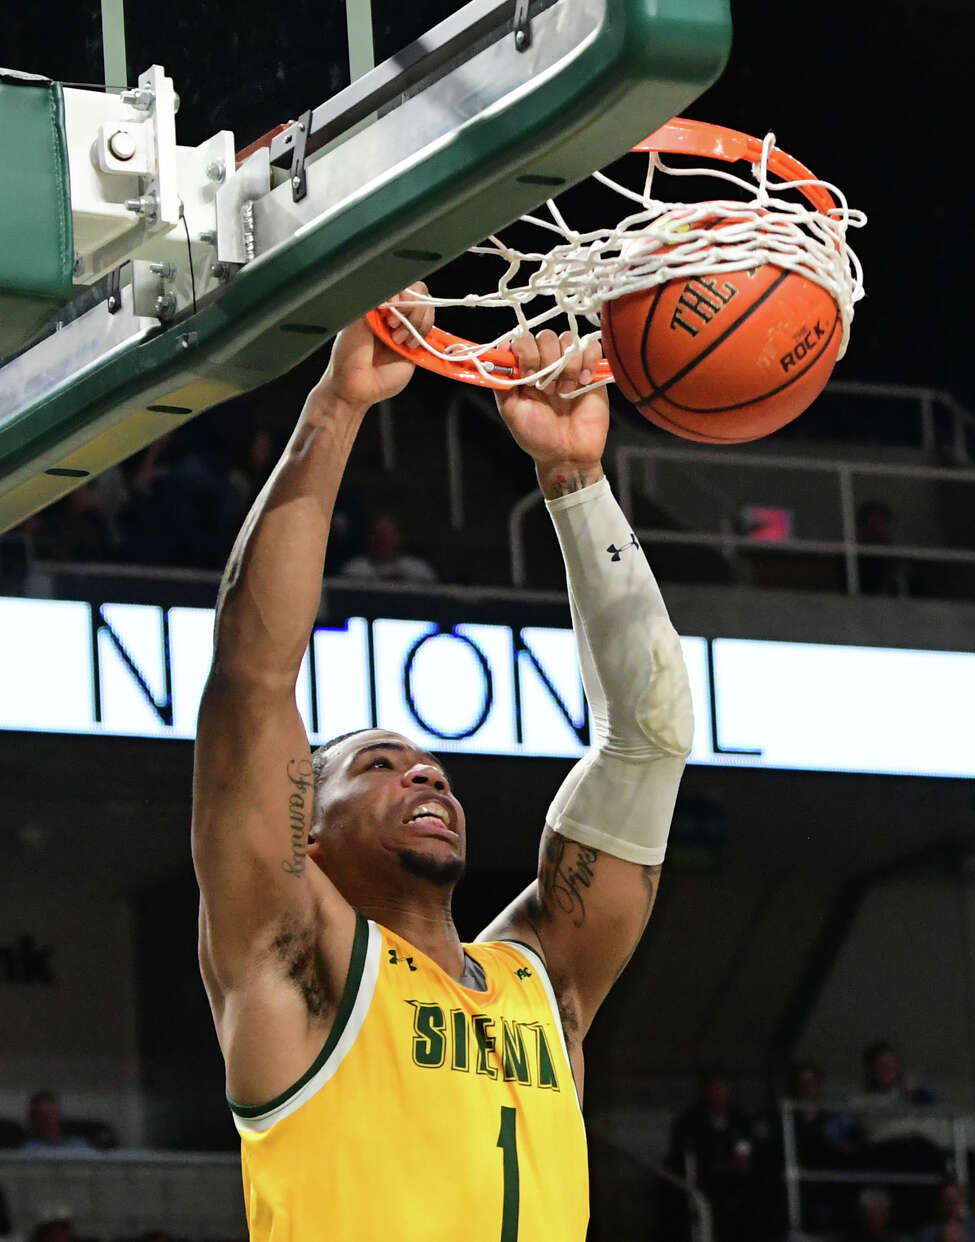 Siena's Elijah Burns dunks the ball during a game against Niagara at the Times Union Center on Wednesday, March 4, 2020 in Albany, N.Y. (Lori Van Buren/Times Union)